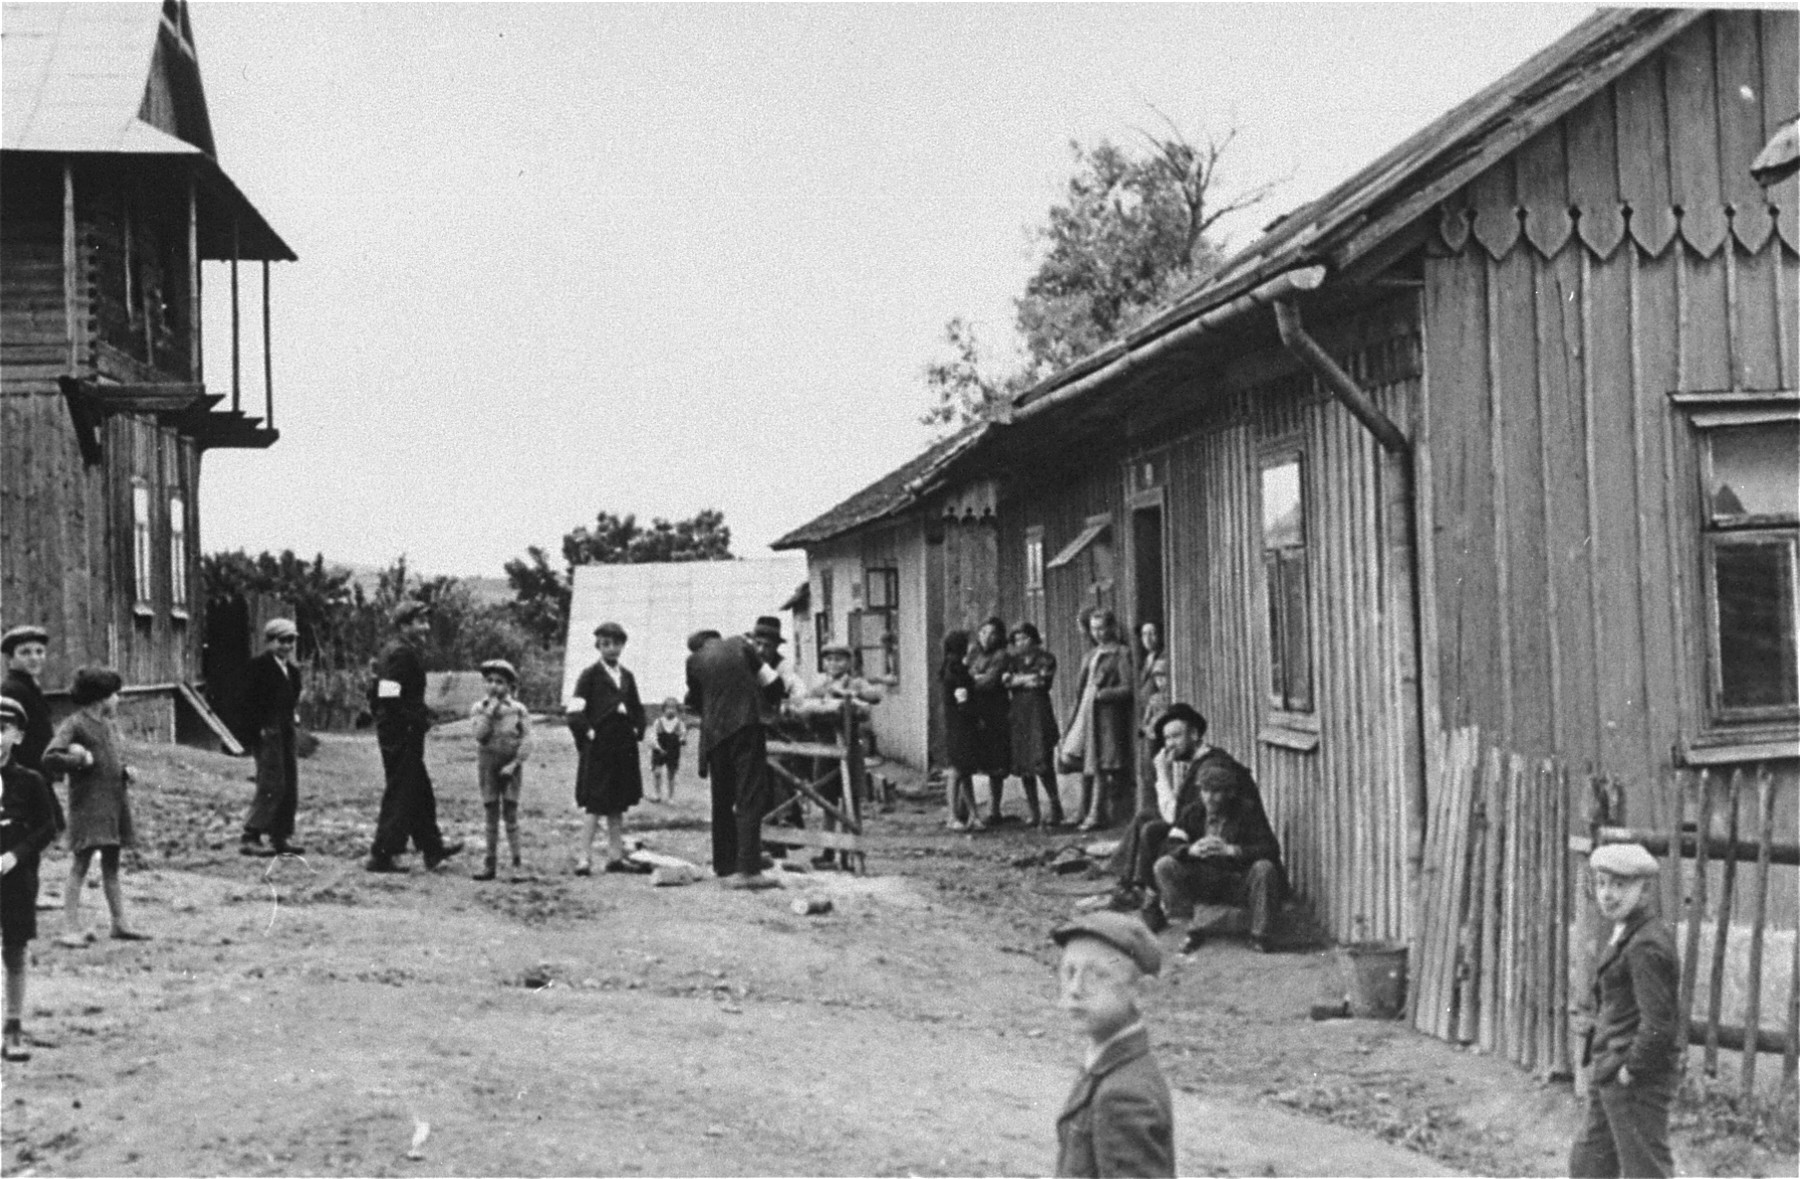 Jews are gathered outside on an unpaved street between rows of wooden houses in the Frysztak ghetto.